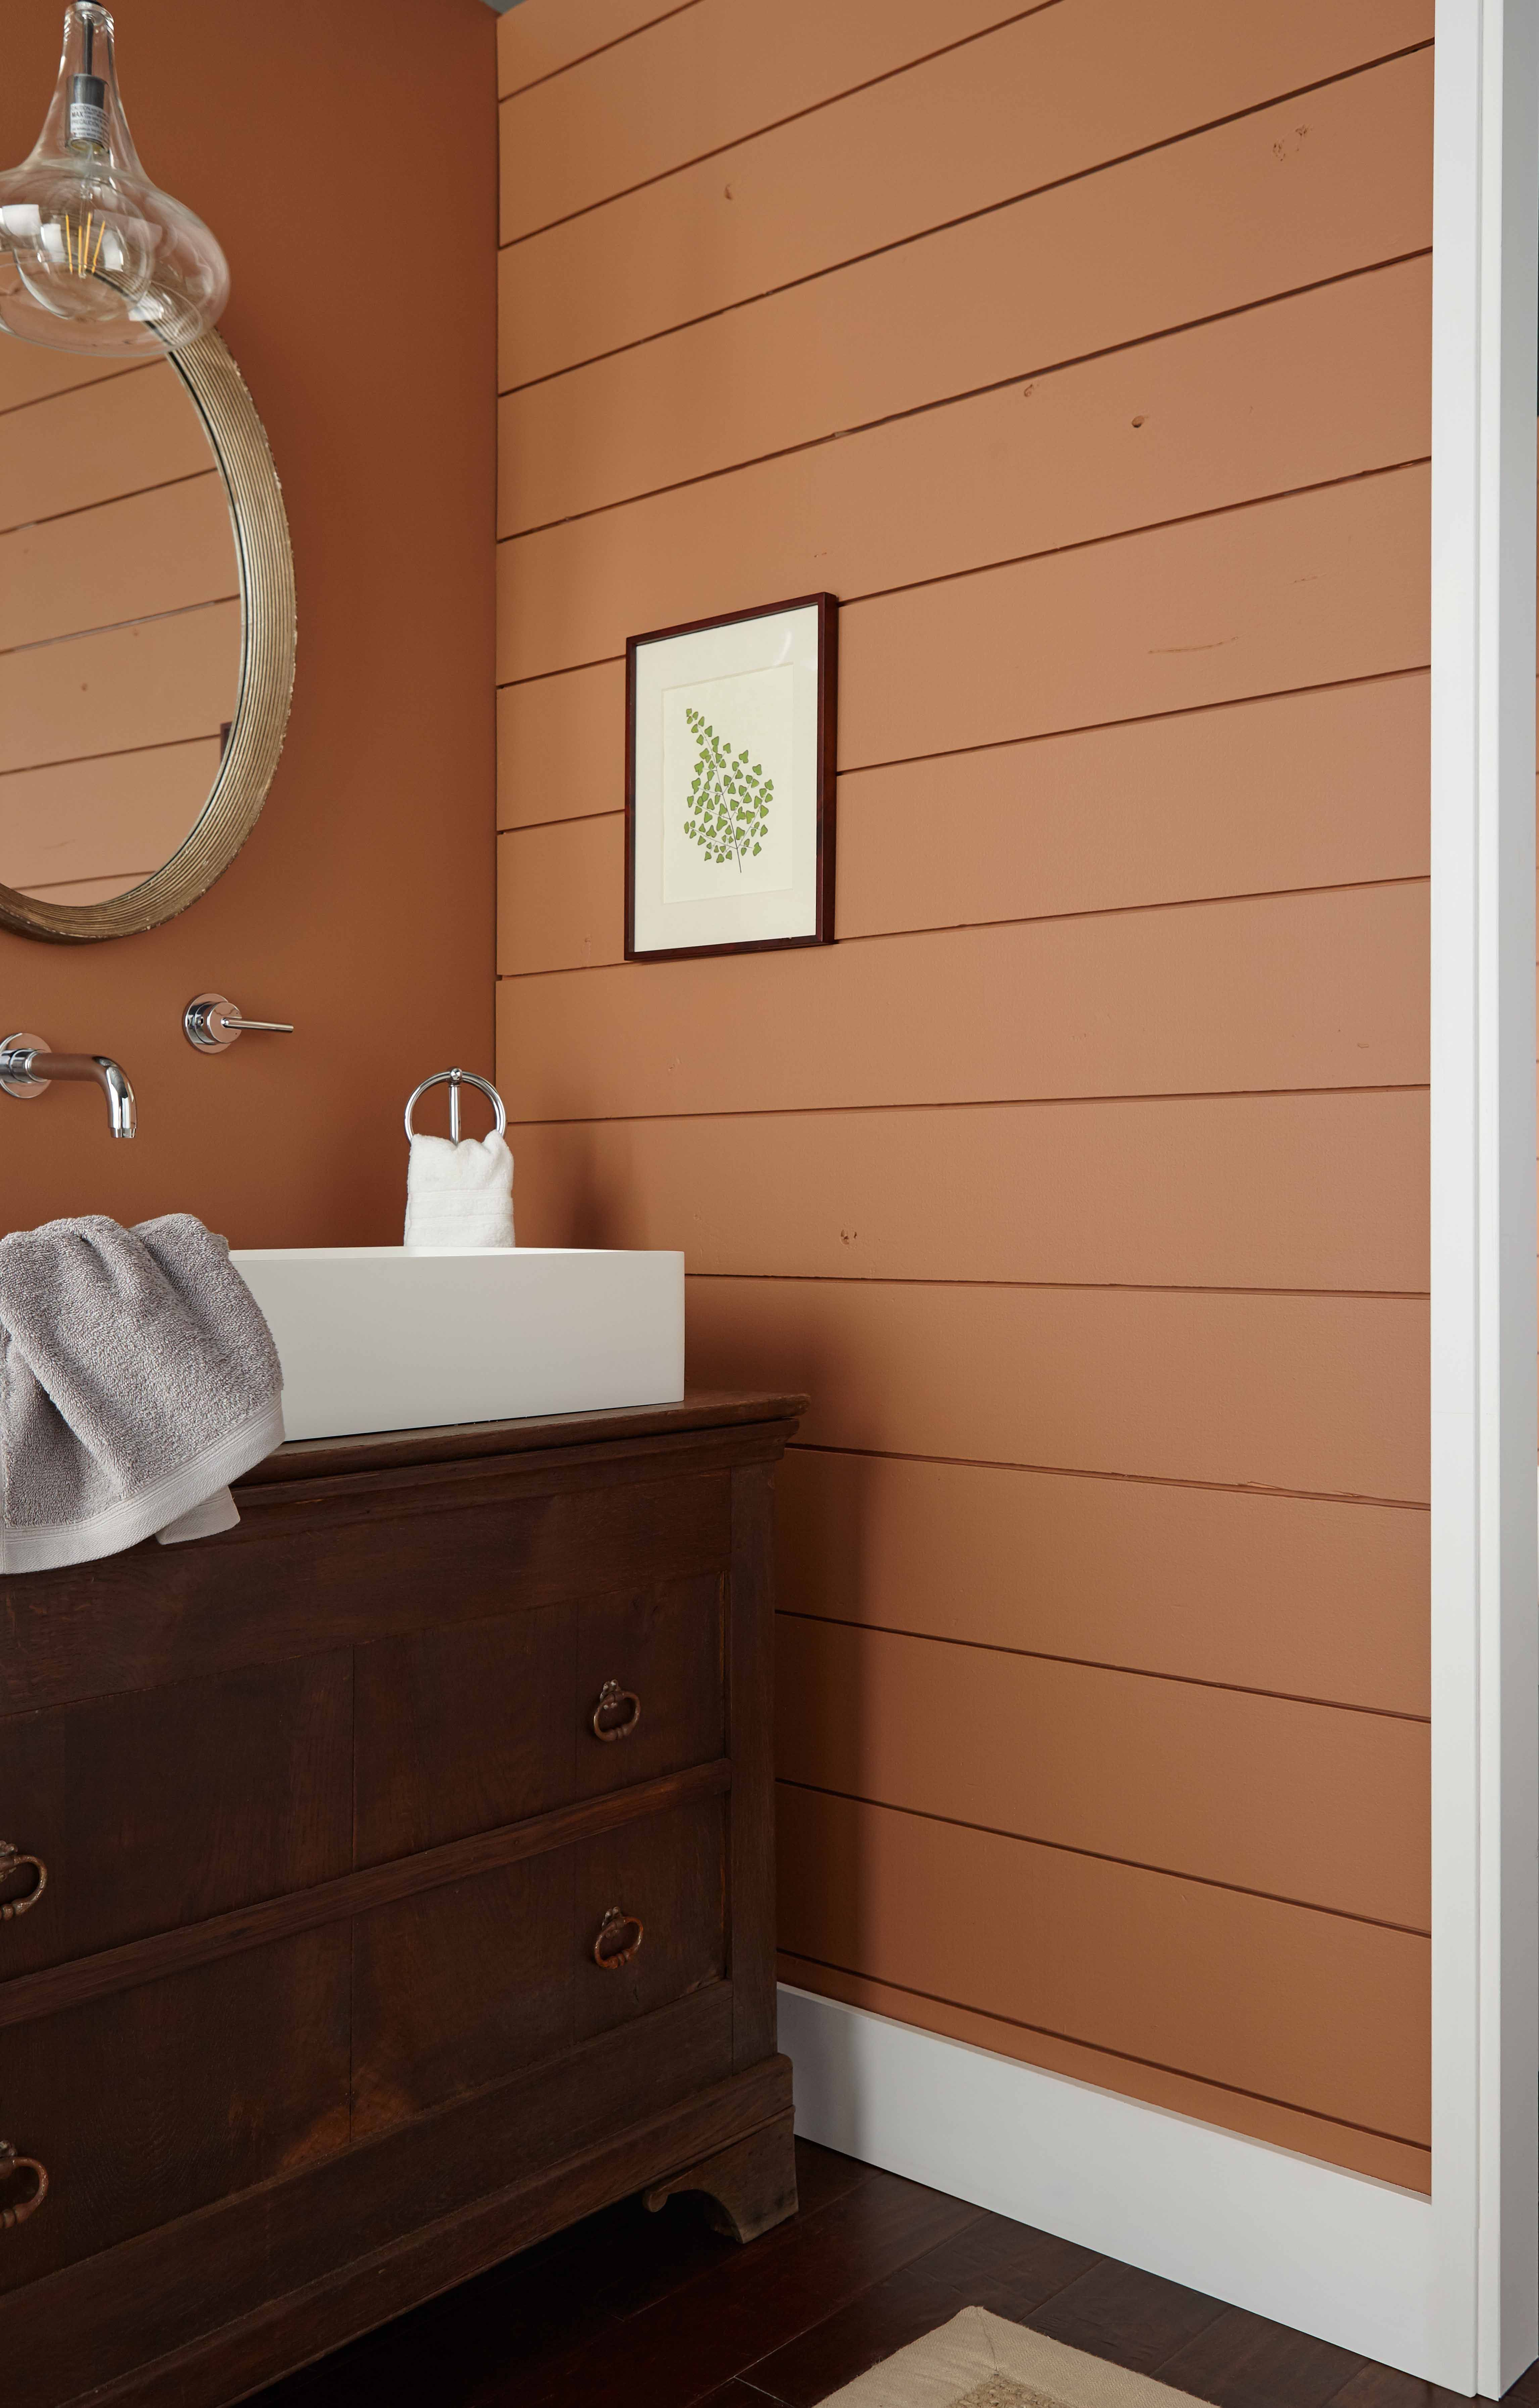 Fresh To Go Behr Color Trends 2020 - The Paint Colors Behr Wants You